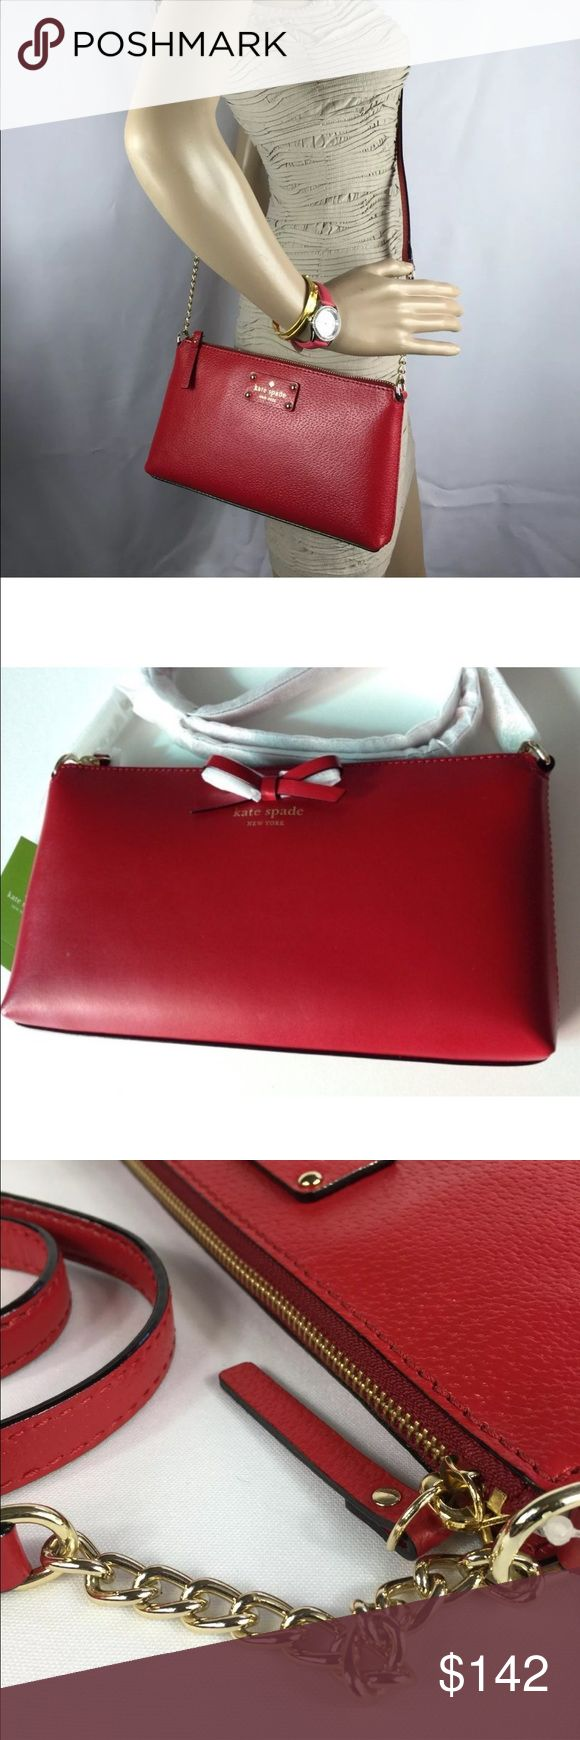 "NET Kate Spade Sawyer St Crossbody CHRISTMAS SALE Kate Spade Sawyer Street Pillbox Red Cross body bag Color Red(pillbox red 617) Size 5.5""(H) x 10.3""(W) x 1.2""(D) Strap drop length 23.8"" ,Total strap length 47.6""                                            Details *Cross body with zip top closure *interior zip double slide pocket *smooth leather  *Capital kate jacquard lining  *14 karat light gold tone hardware kate spade Bags Crossbody Bags"